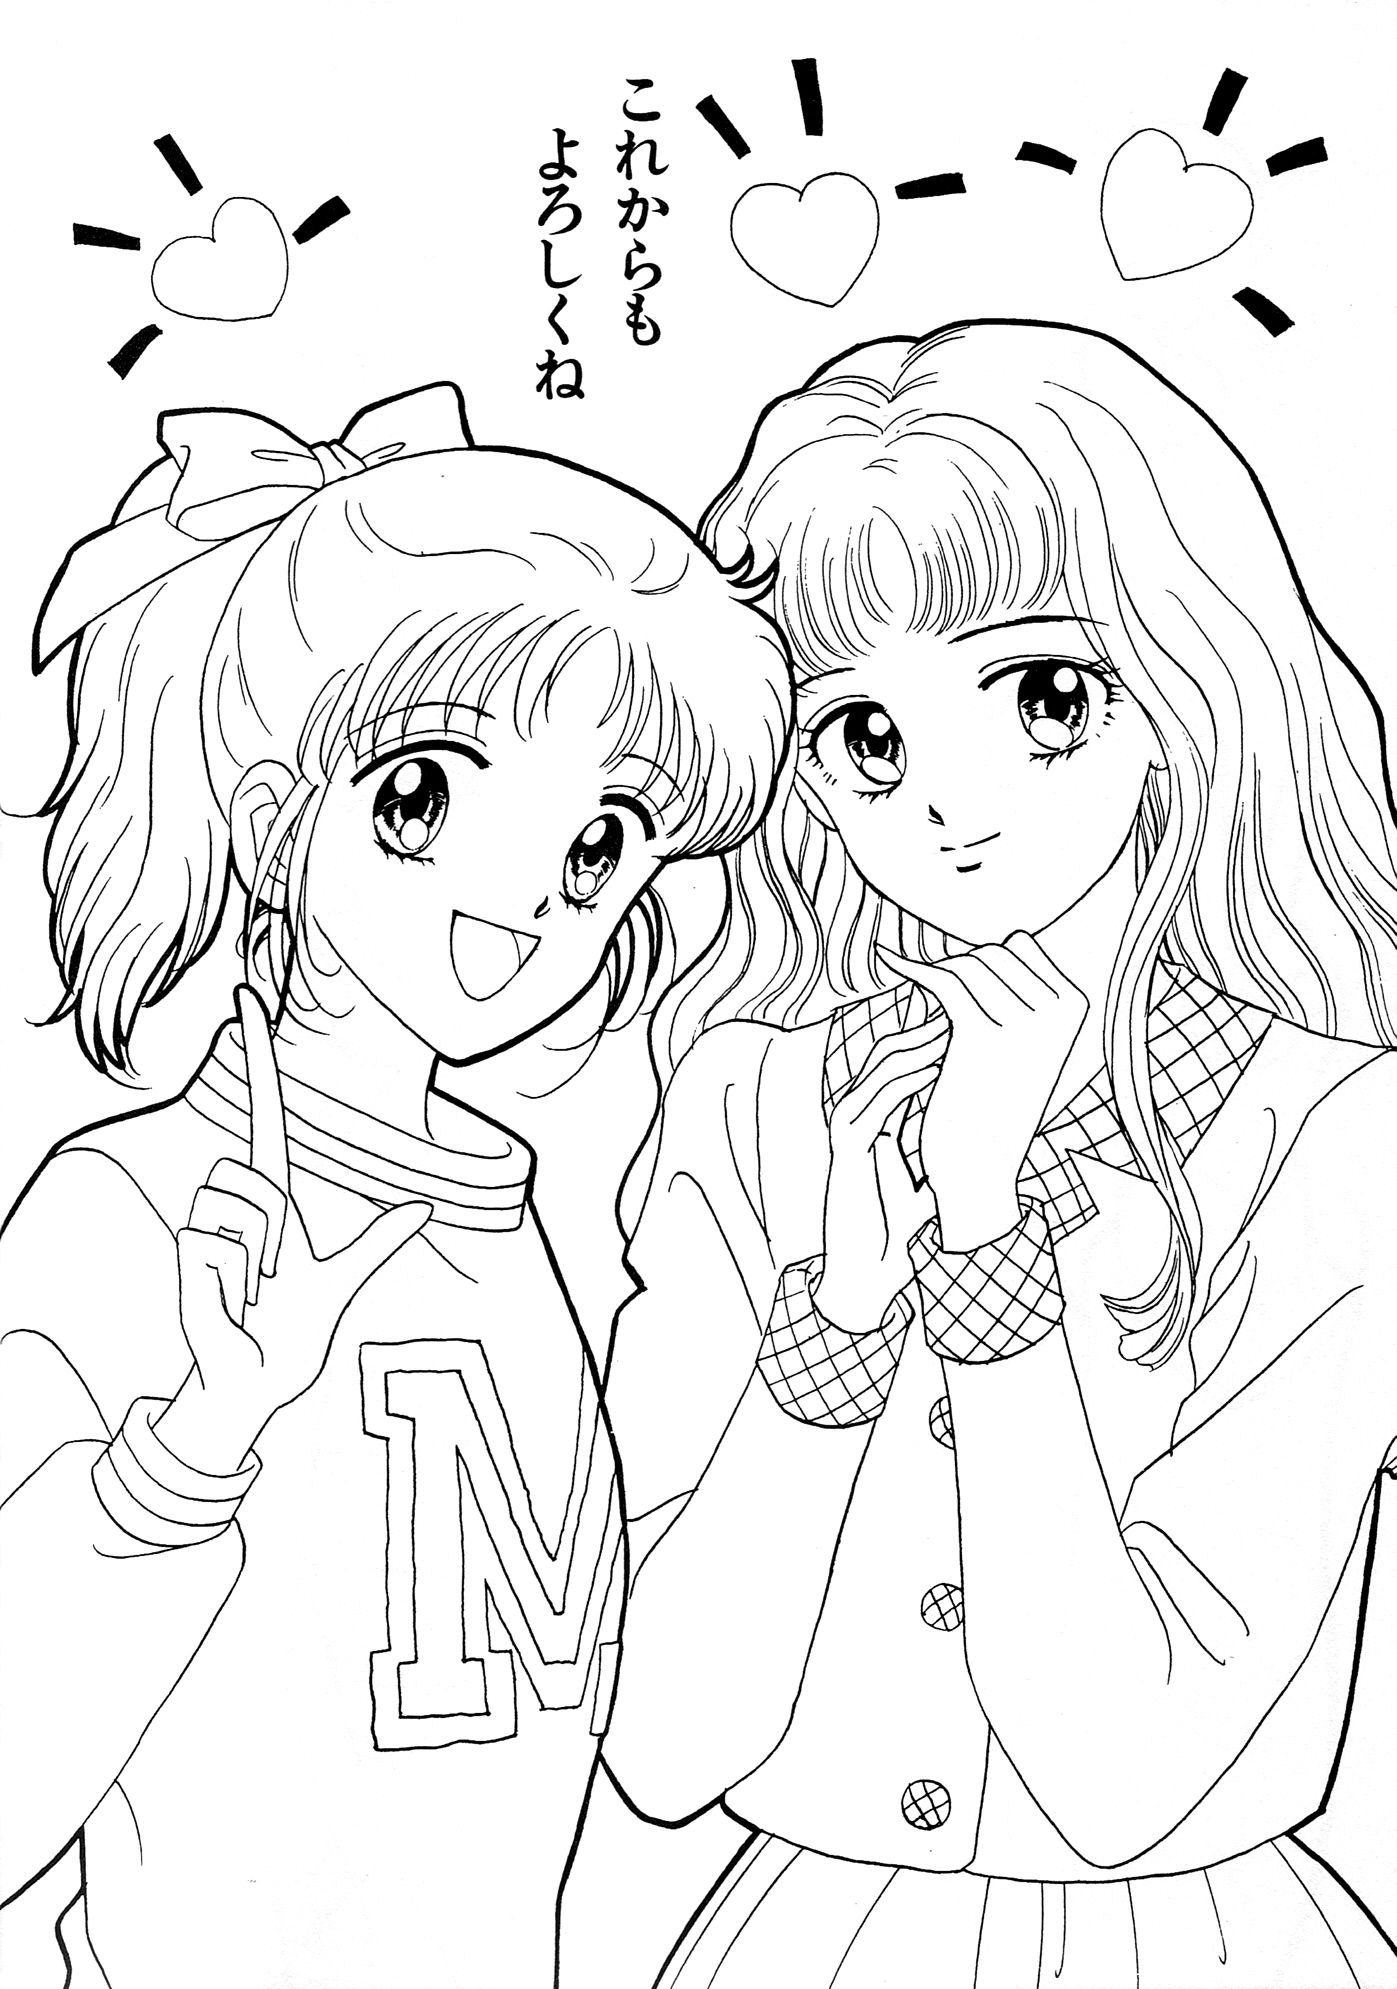 manga anime coloring pages anime cat girl coloring pages coloring home pages anime coloring manga